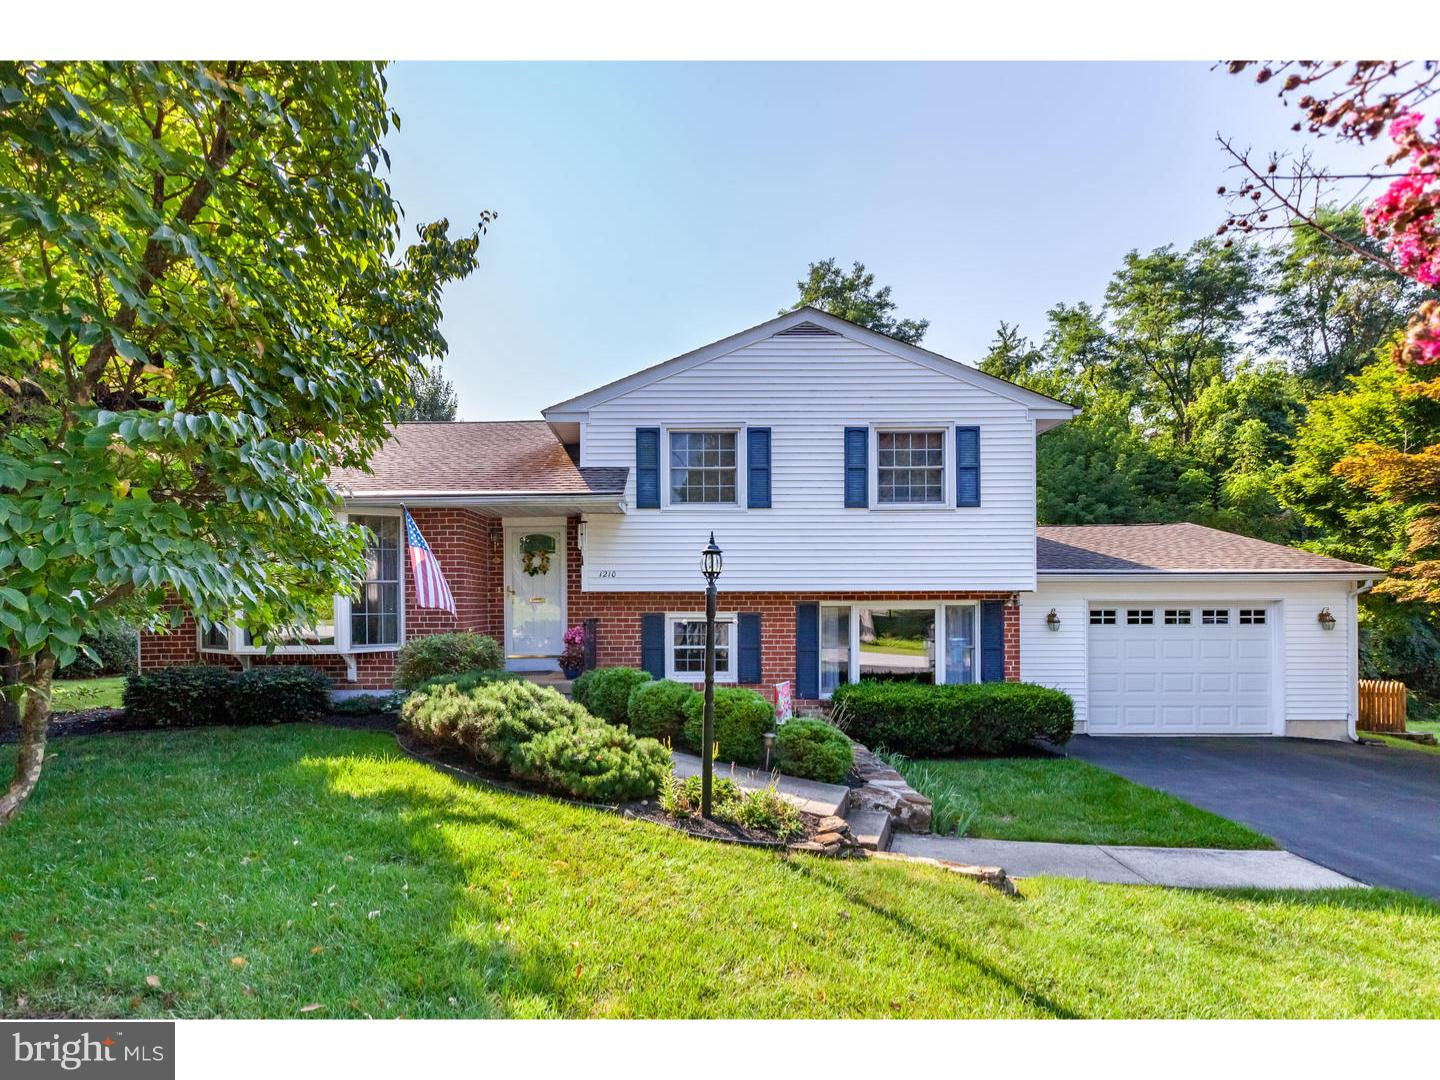 1210 Cavalier Lane West Chester, PA 19380